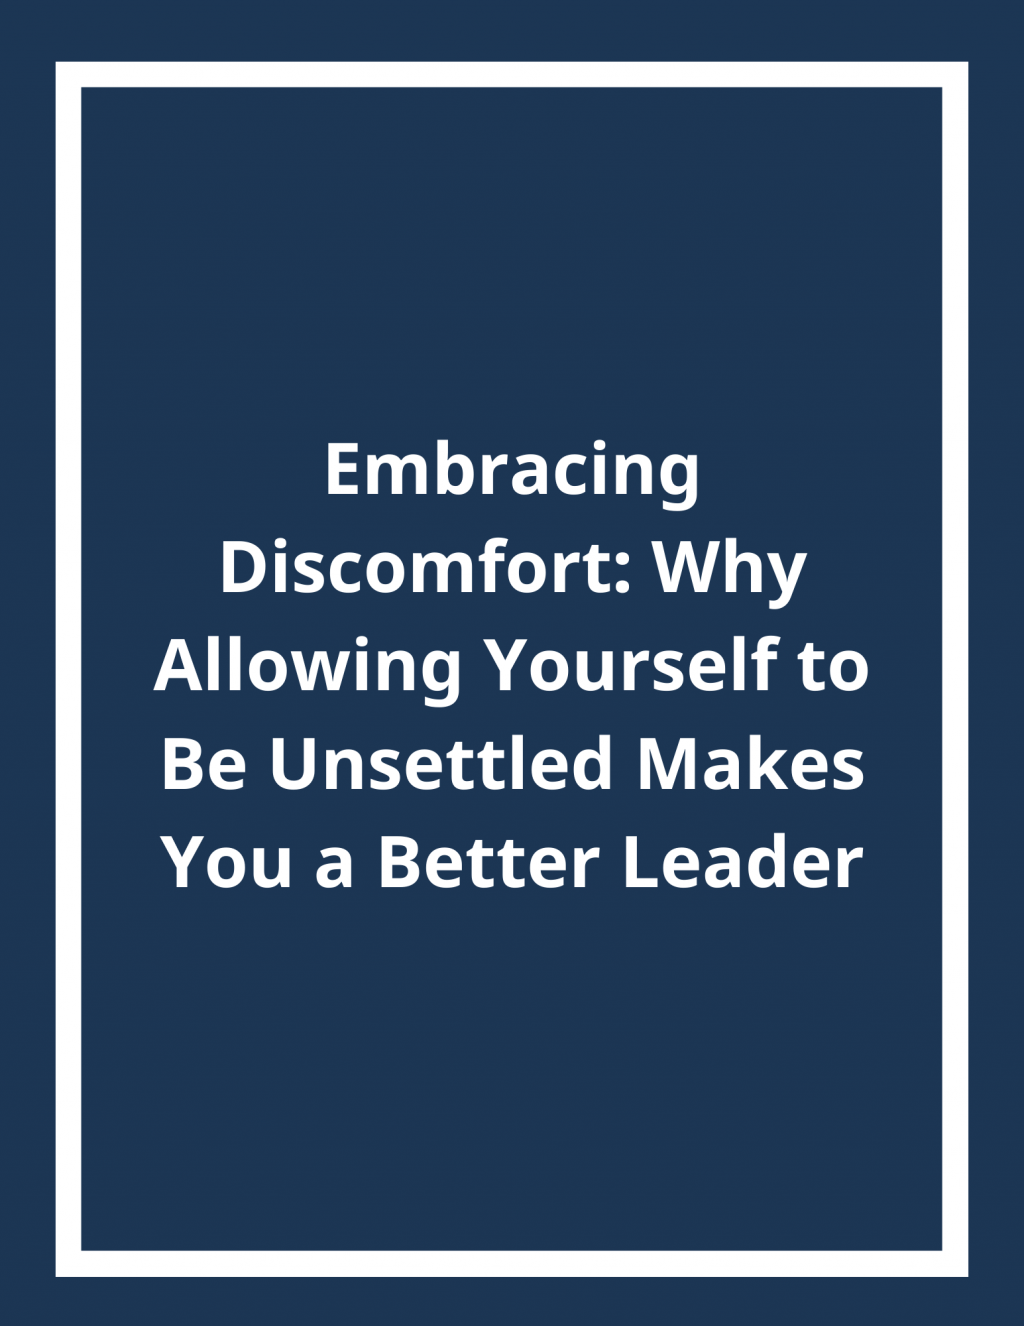 Embracing Discomfort: Why Allowing Yourself to Be Unsettled Makes You a Better Leader